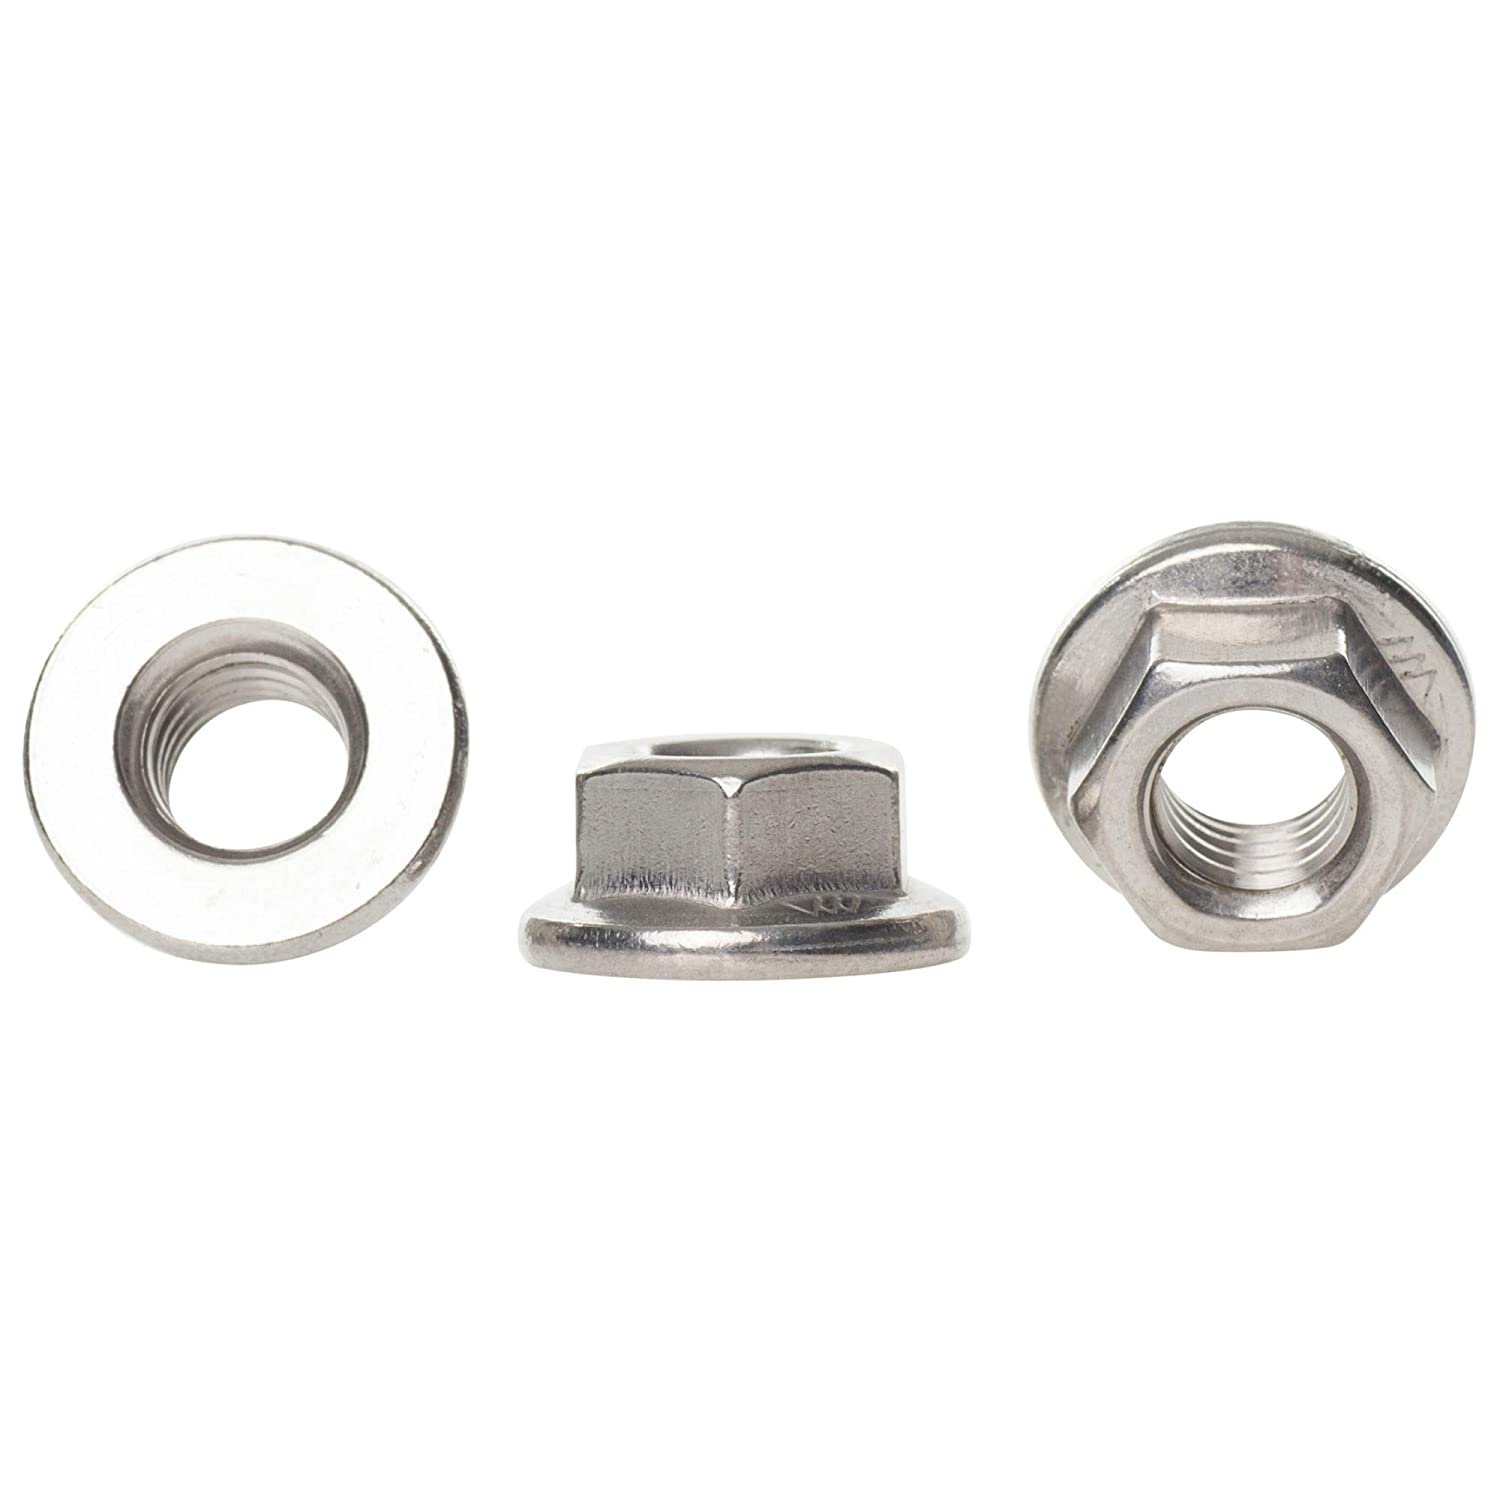 M8 Stainless Serrated Flange Nuts  10 pack